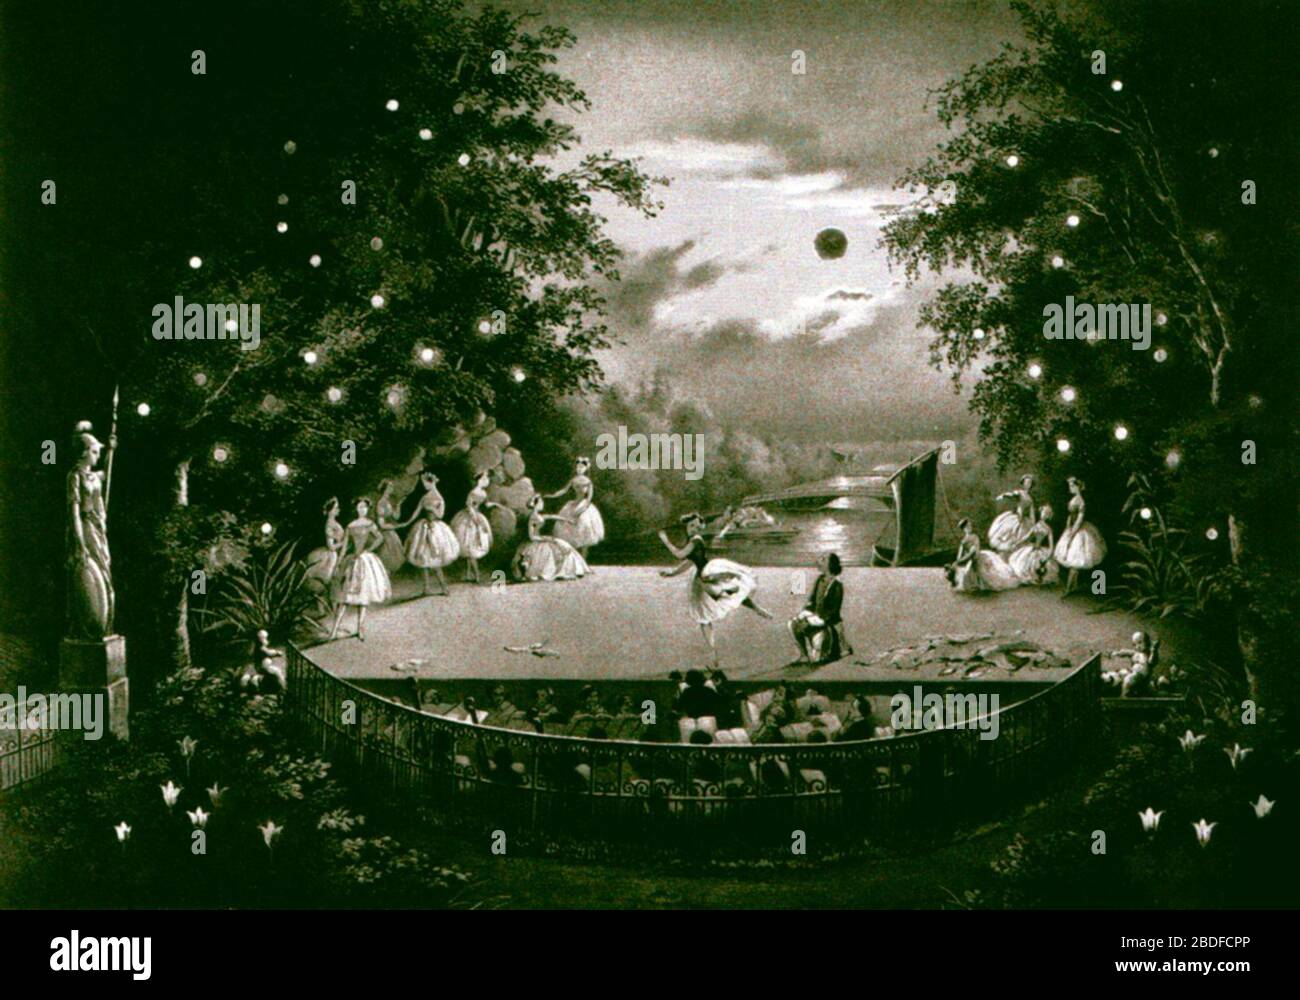 """""""Lithograph depicting an 1851 performance on the outdoor stage of Peterhof - St. Petersburg, Russian Empire - of the choreographer Jules Perrot (1810-1892) and the composer Cesare Pugni's (1802-1870) ballet La Naïade et le pêcheur (a.k.a. Ondine, ou La Naïade). The performance was given in celebration of the birthday of the Grand Duchess Olga Nicolaevna (1822-1892); circa 1851 date QS:P,+1851-00-00T00:00:00Z/9,P1480,Q5727902; Scanned from the book Ballet Art: From the Renaissance to the Present by Mary Clark and Clement Crisp. Published by Clarkson N. Potter, Inc. 1978.; Adolf Charlamagne (182 Stock Photo"""